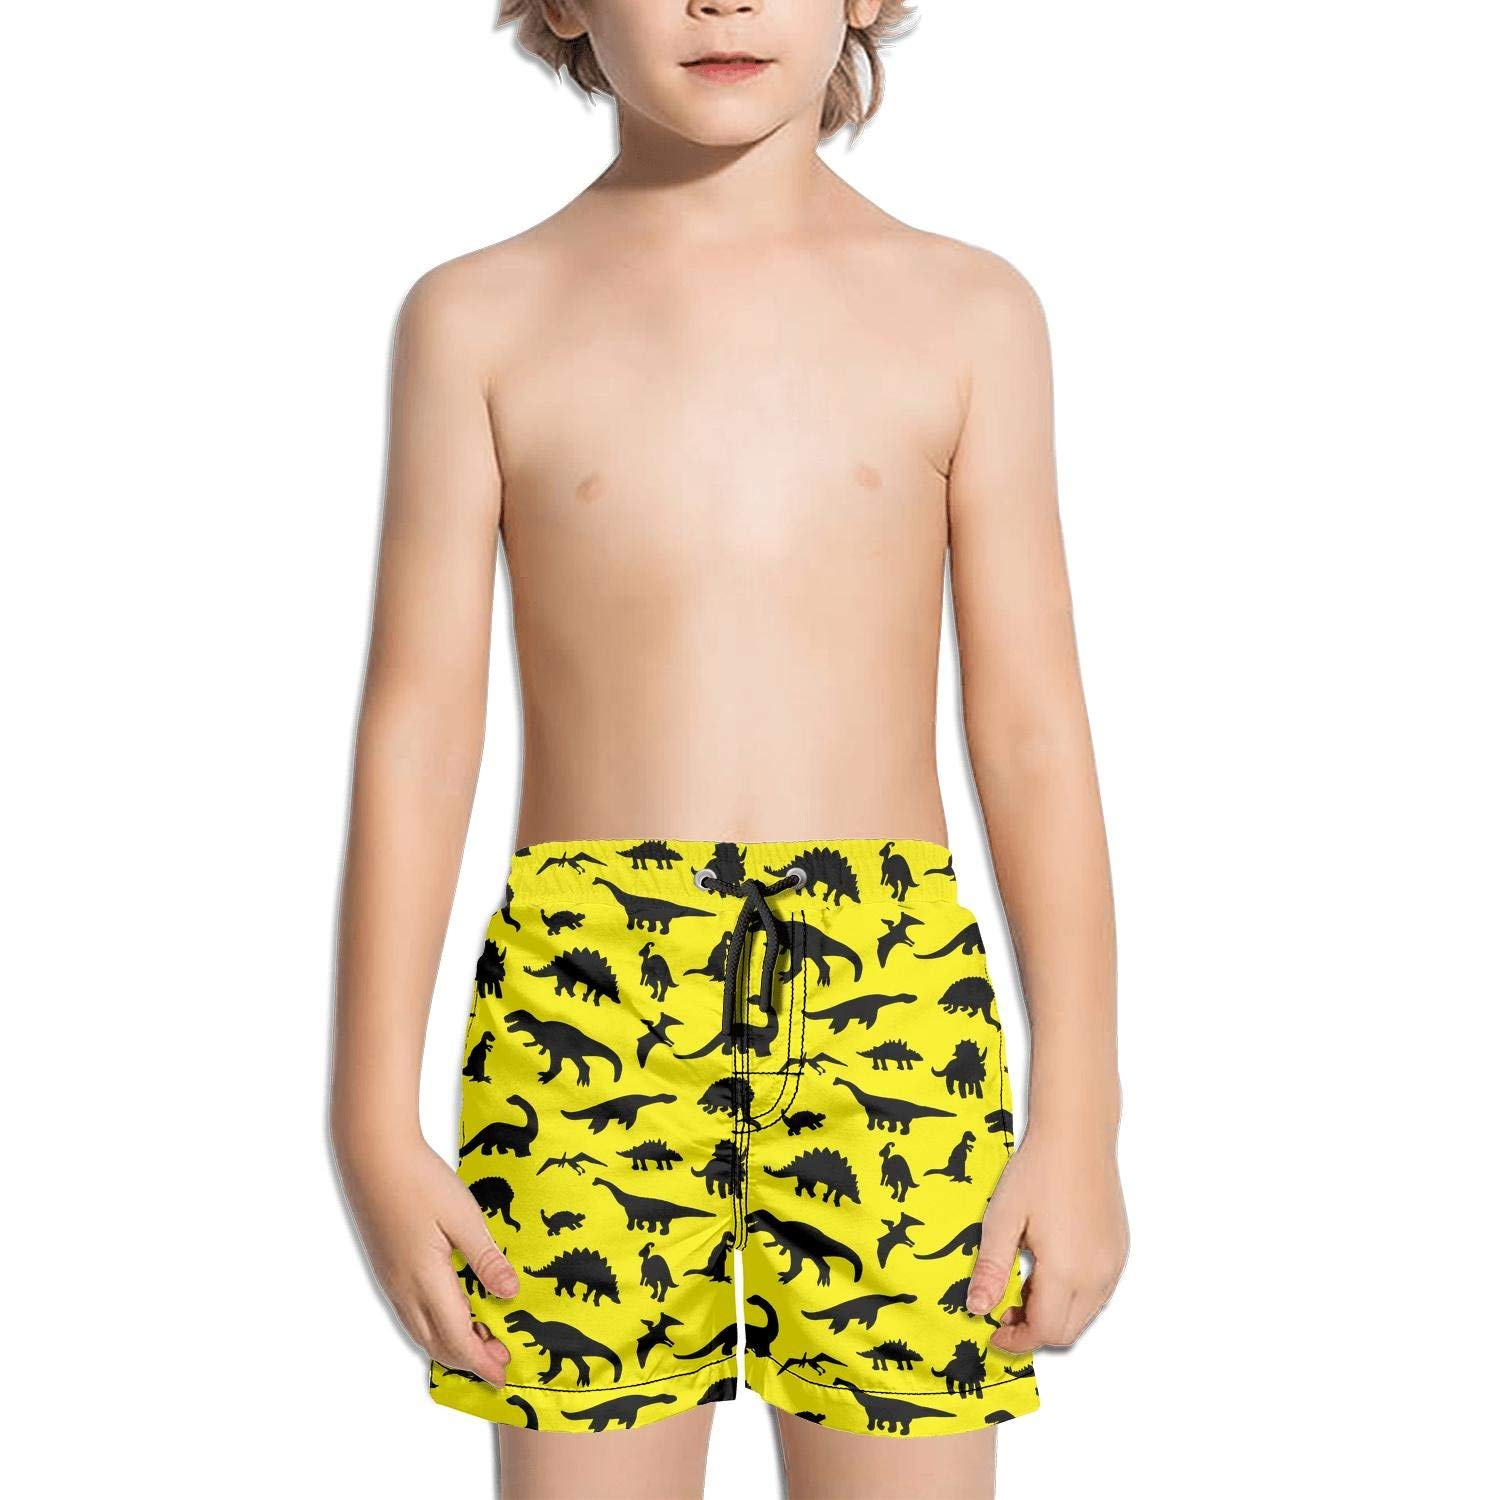 3237a2178a73a Get Quotations · FullBo Tiny Pink Dinosaurs Fossils Party Animal Print  Little Boy's Short Swim Trunks Quick Dry Beach